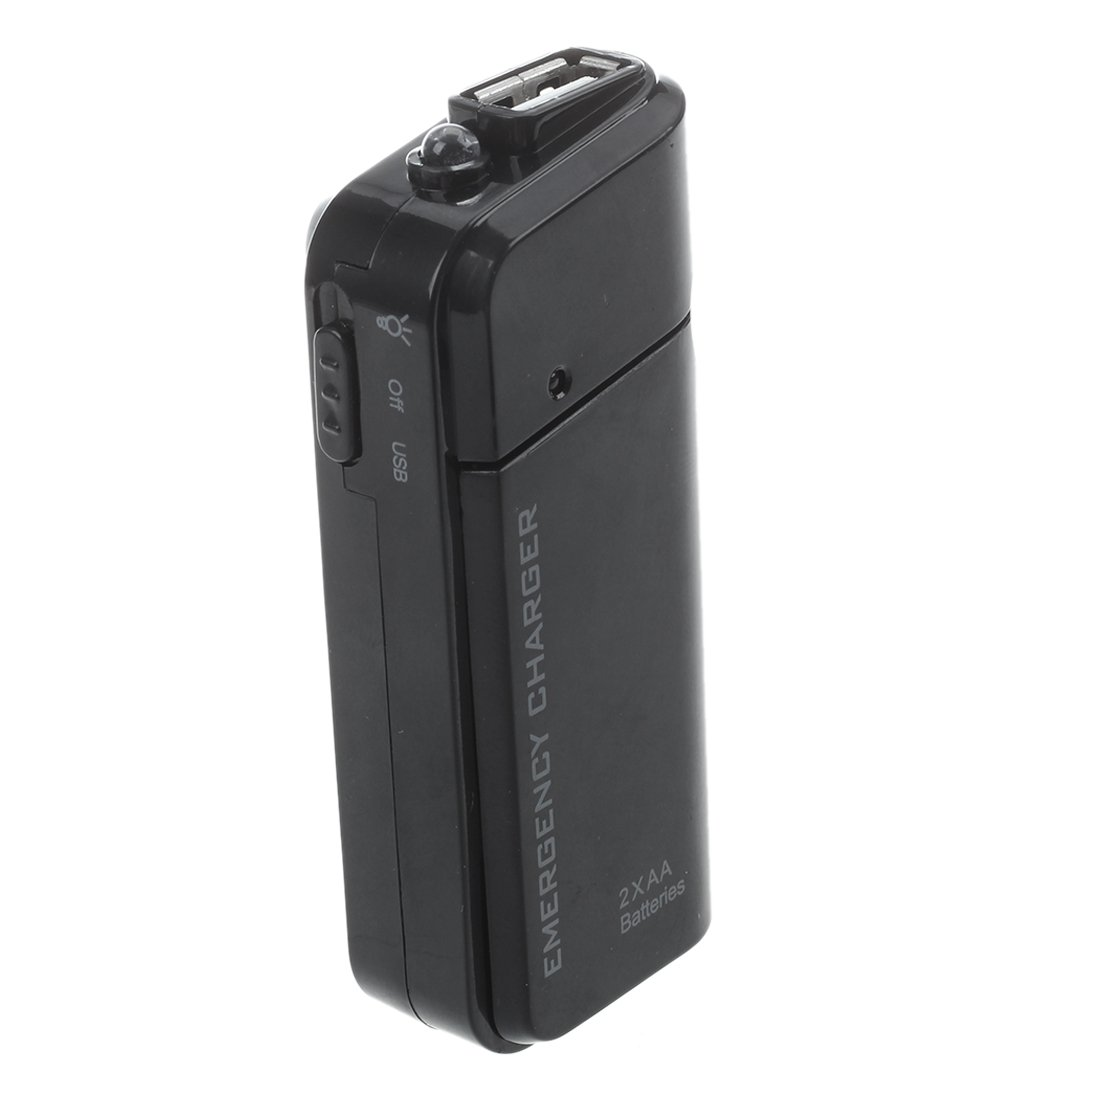 SODIAL(R) Portable USB Emergency AA Battery Powered Charger With Flashlight for Cellphone iPhone iPod MP3/MP4 player Black by SODIAL (Image #4)